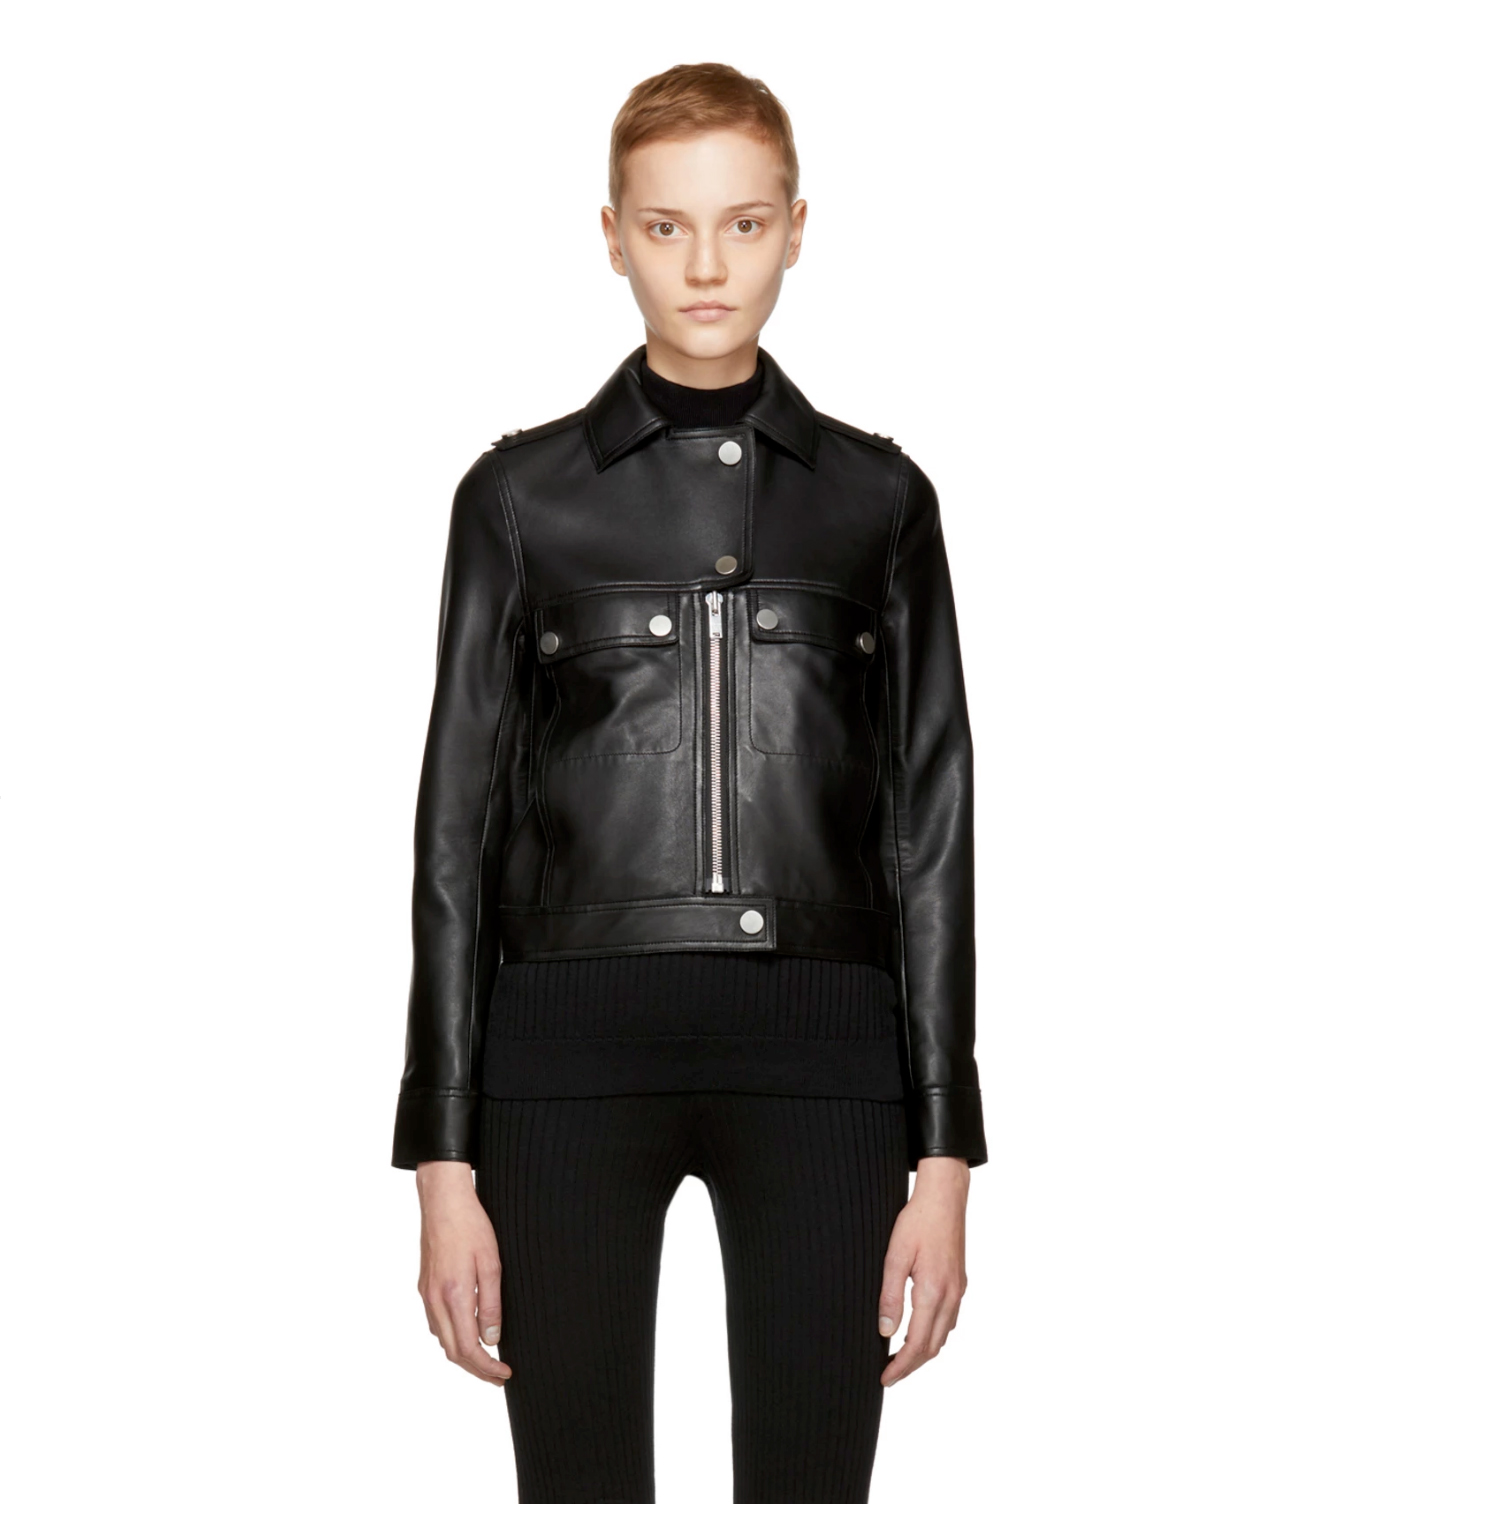 Courrèges - Black Leather Biker Jacket - Sodafirm